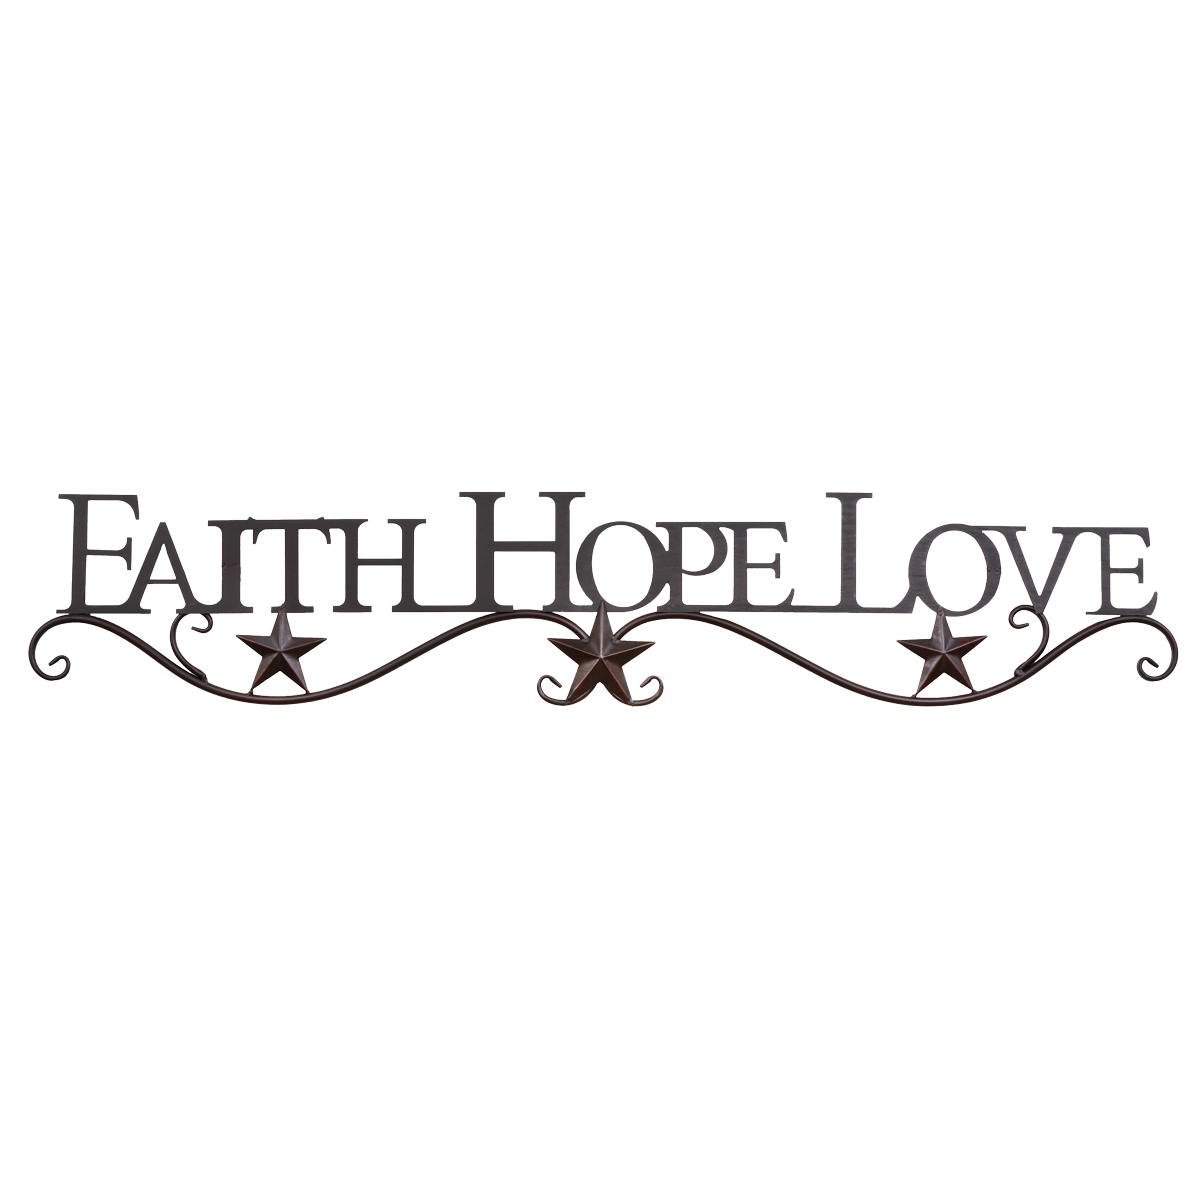 Faith, Hope, Love Metal Star Wall Hanging